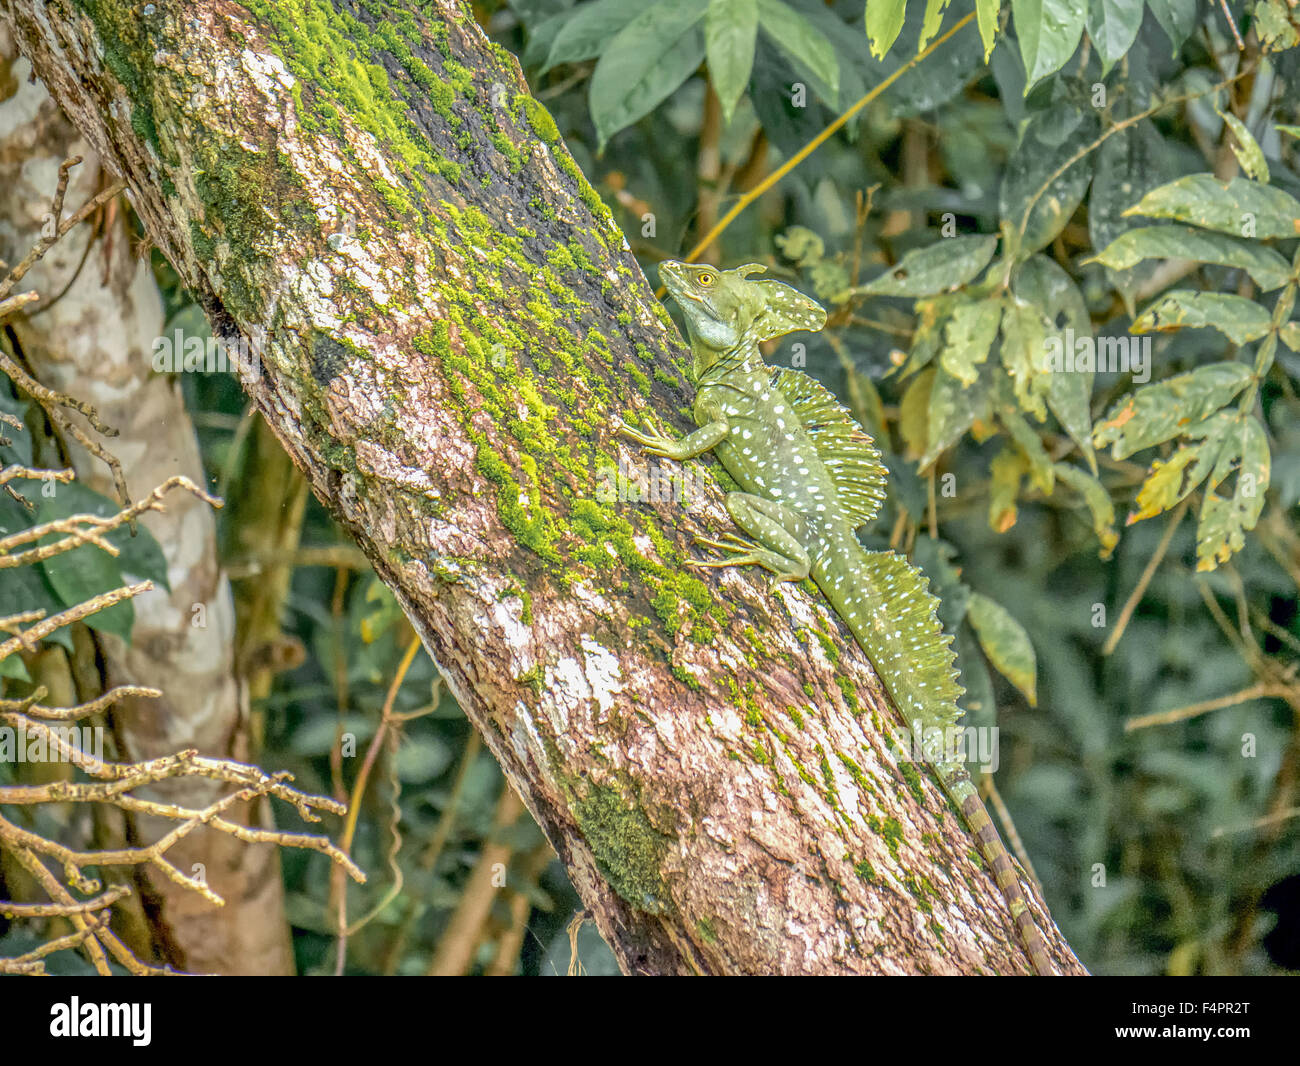 A plumed basilisk, Basiliscus plumifrons, sits in a tree along the bank of Rio Frio in Costa Rica. Stock Photo